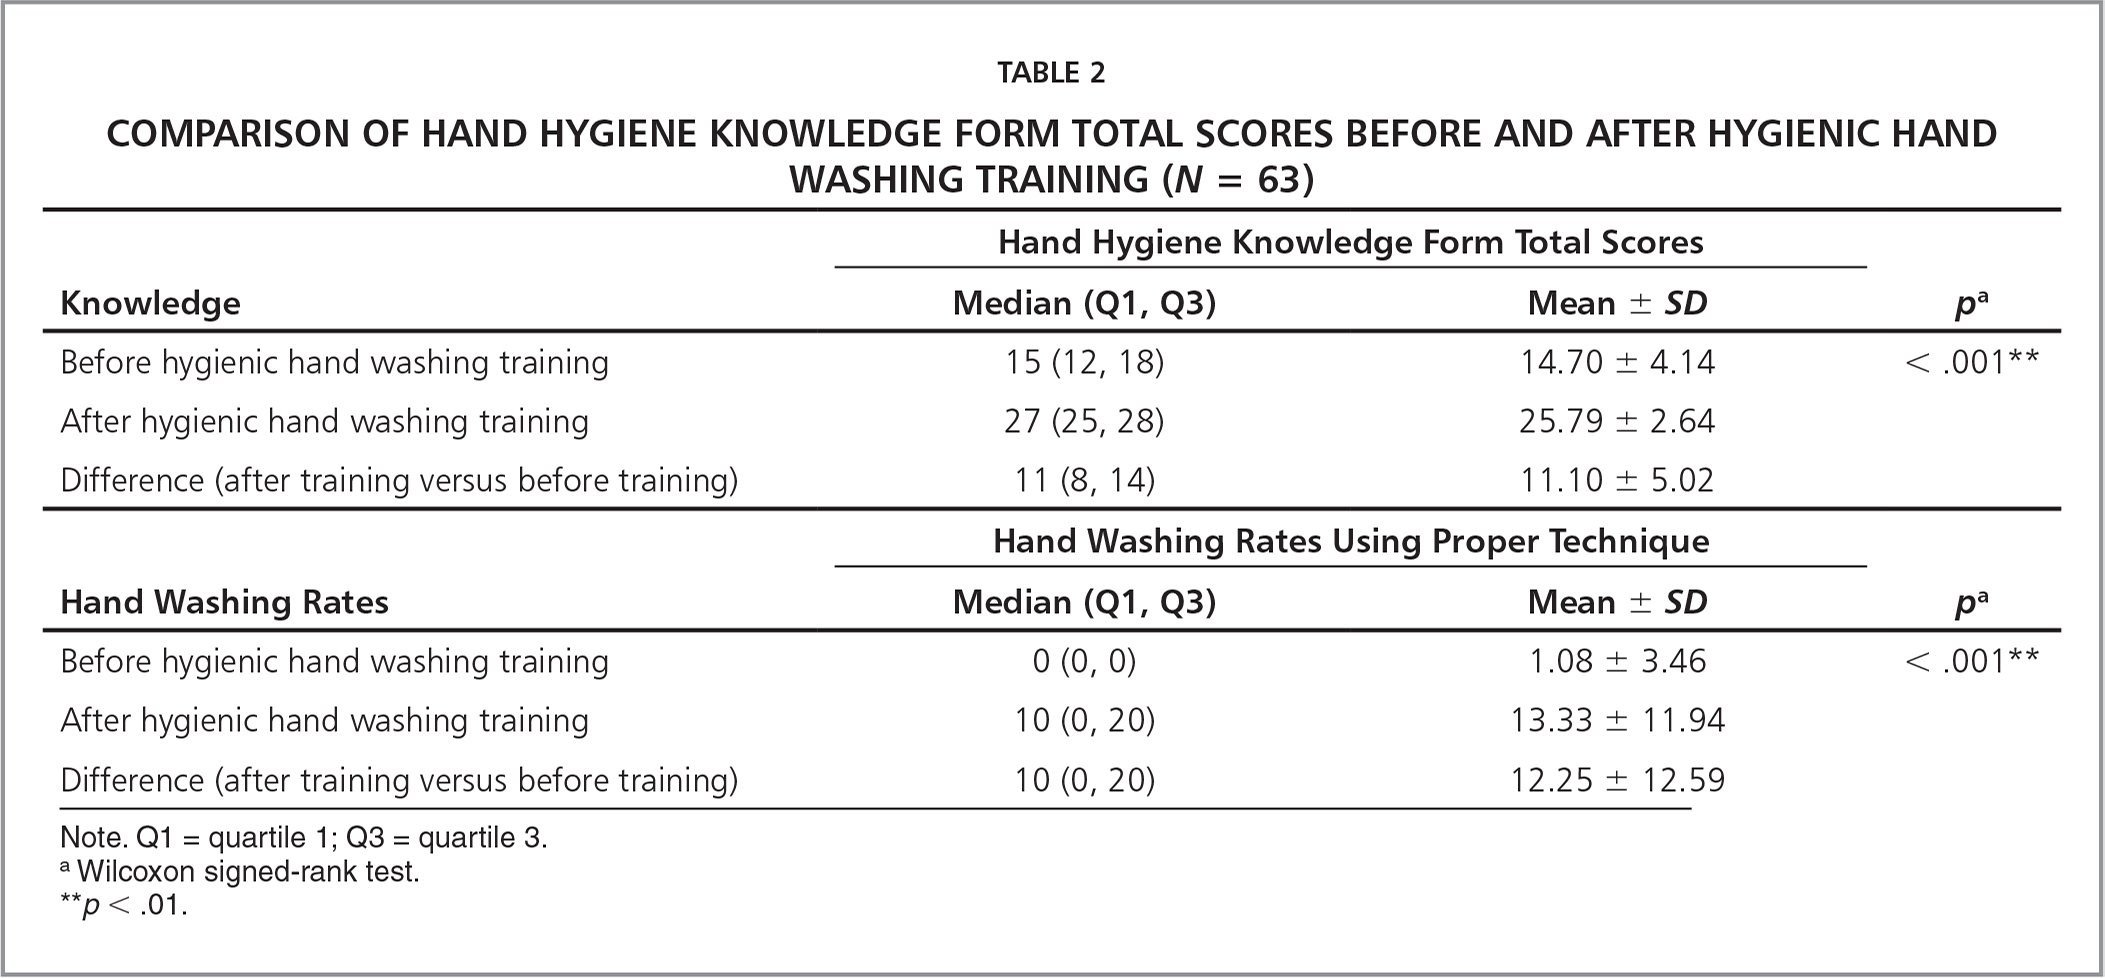 Comparison of Hand Hygiene Knowledge Form Total Scores Before and After Hygienic Hand Washing Training (N = 63)